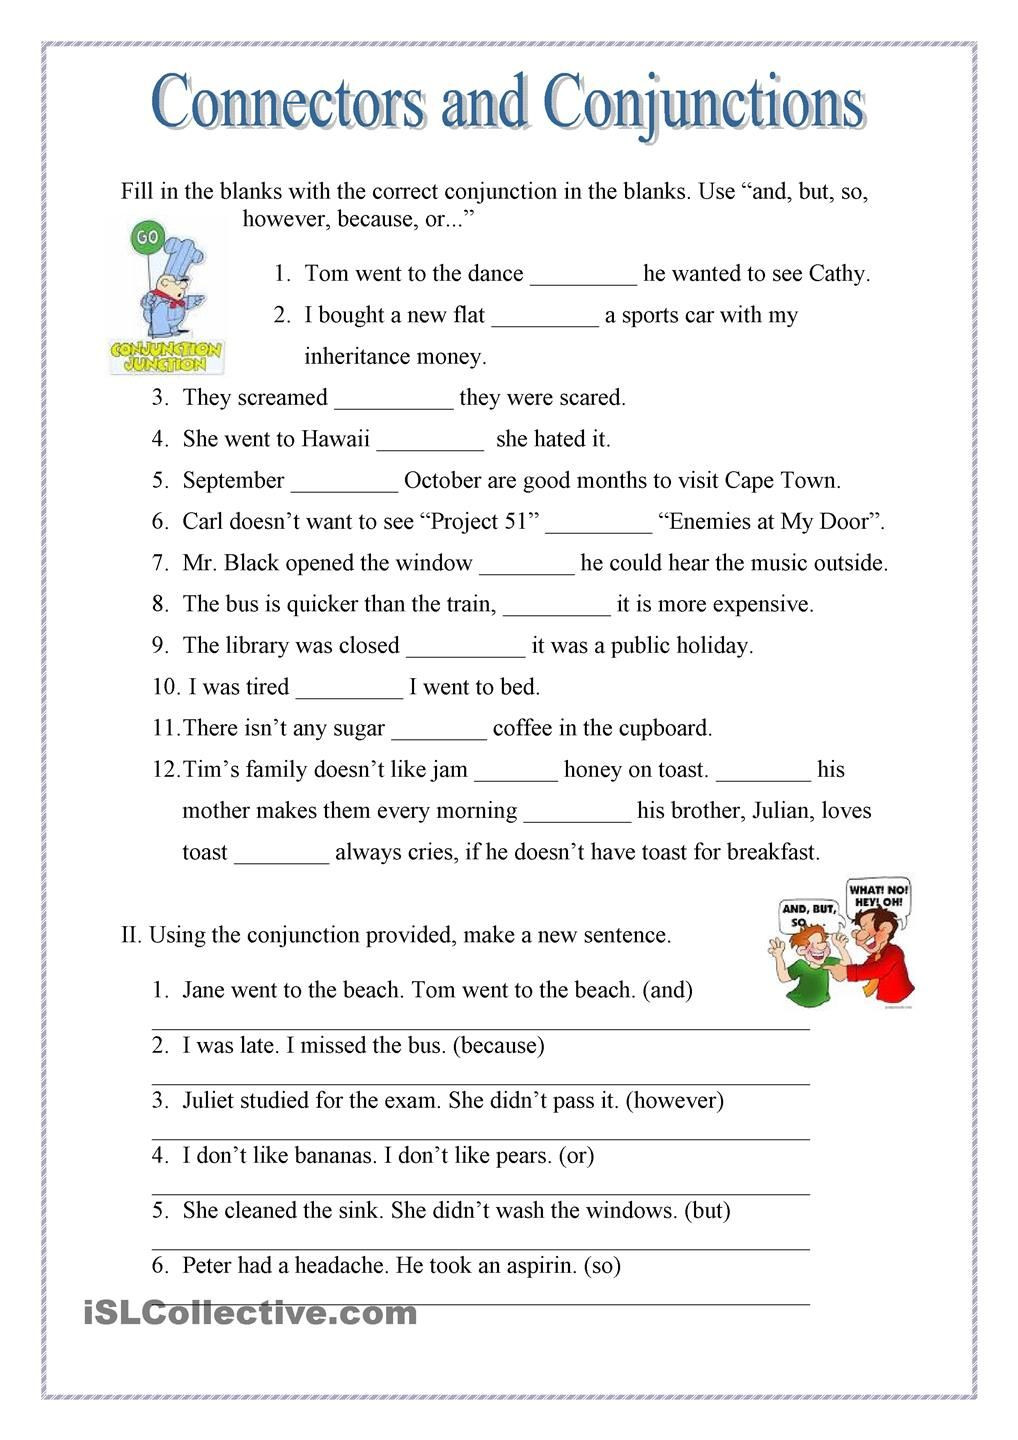 Conjunction Worksheet 3rd Grade Conjuctions and Connectors